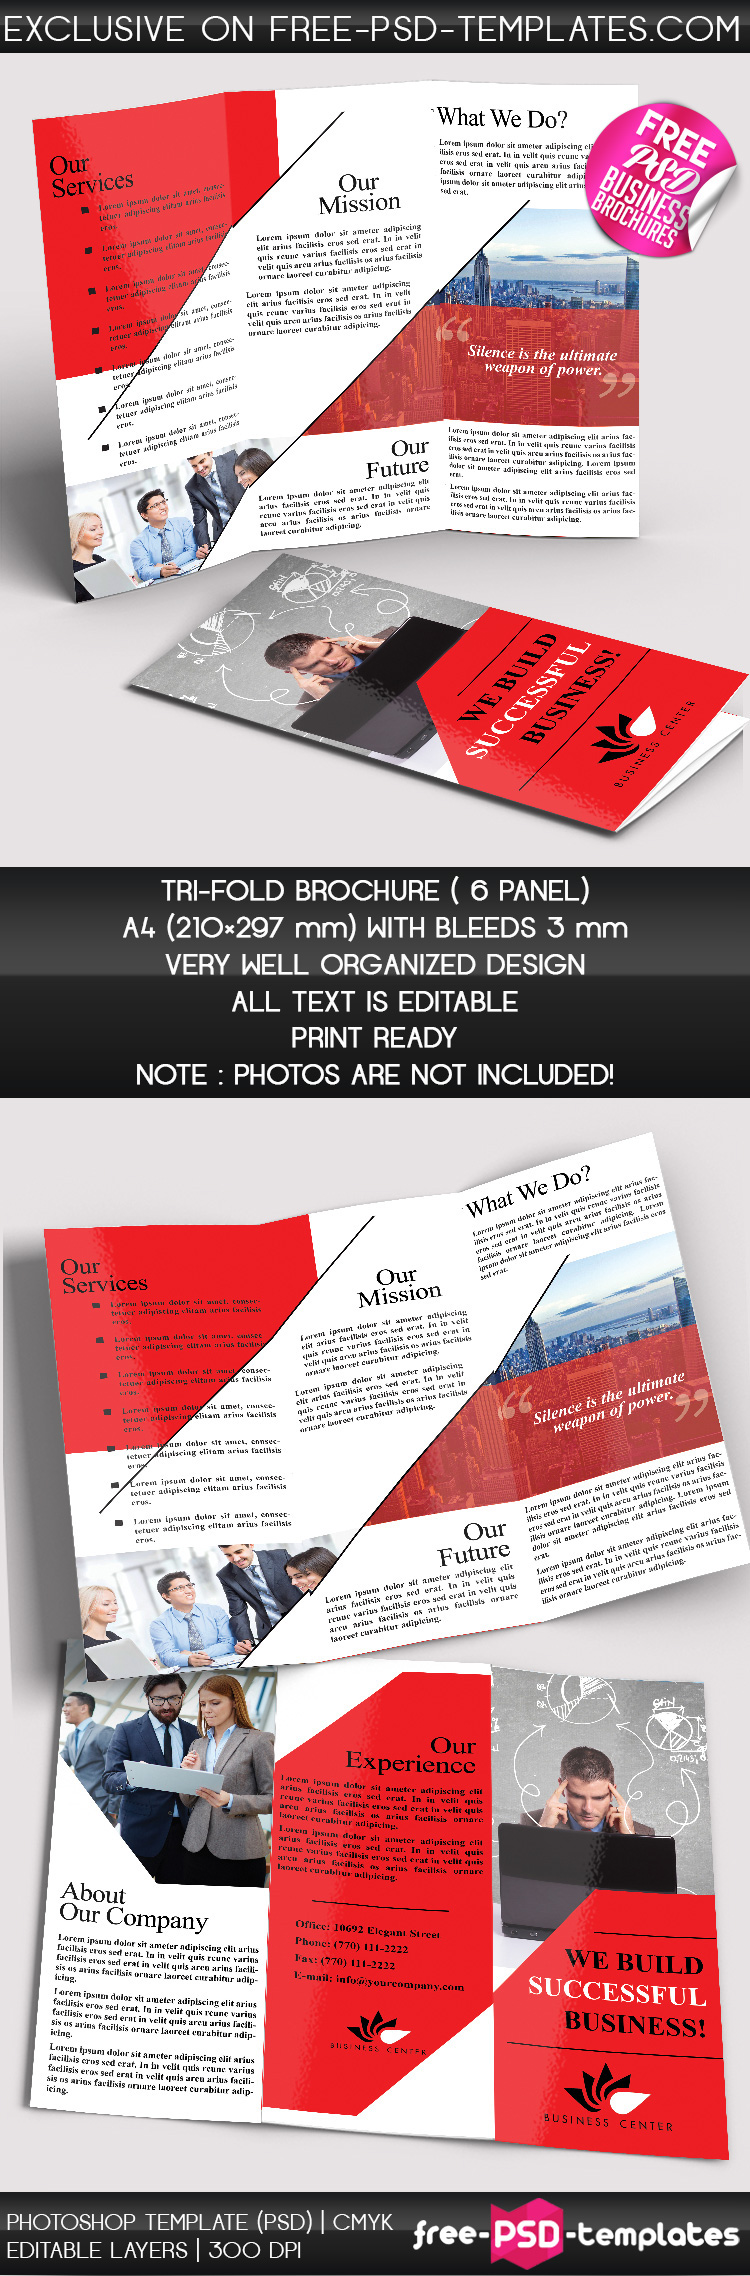 Free psd business brochure template on behance more at free psd business brochure template on behance more at designresources cheaphphosting Gallery